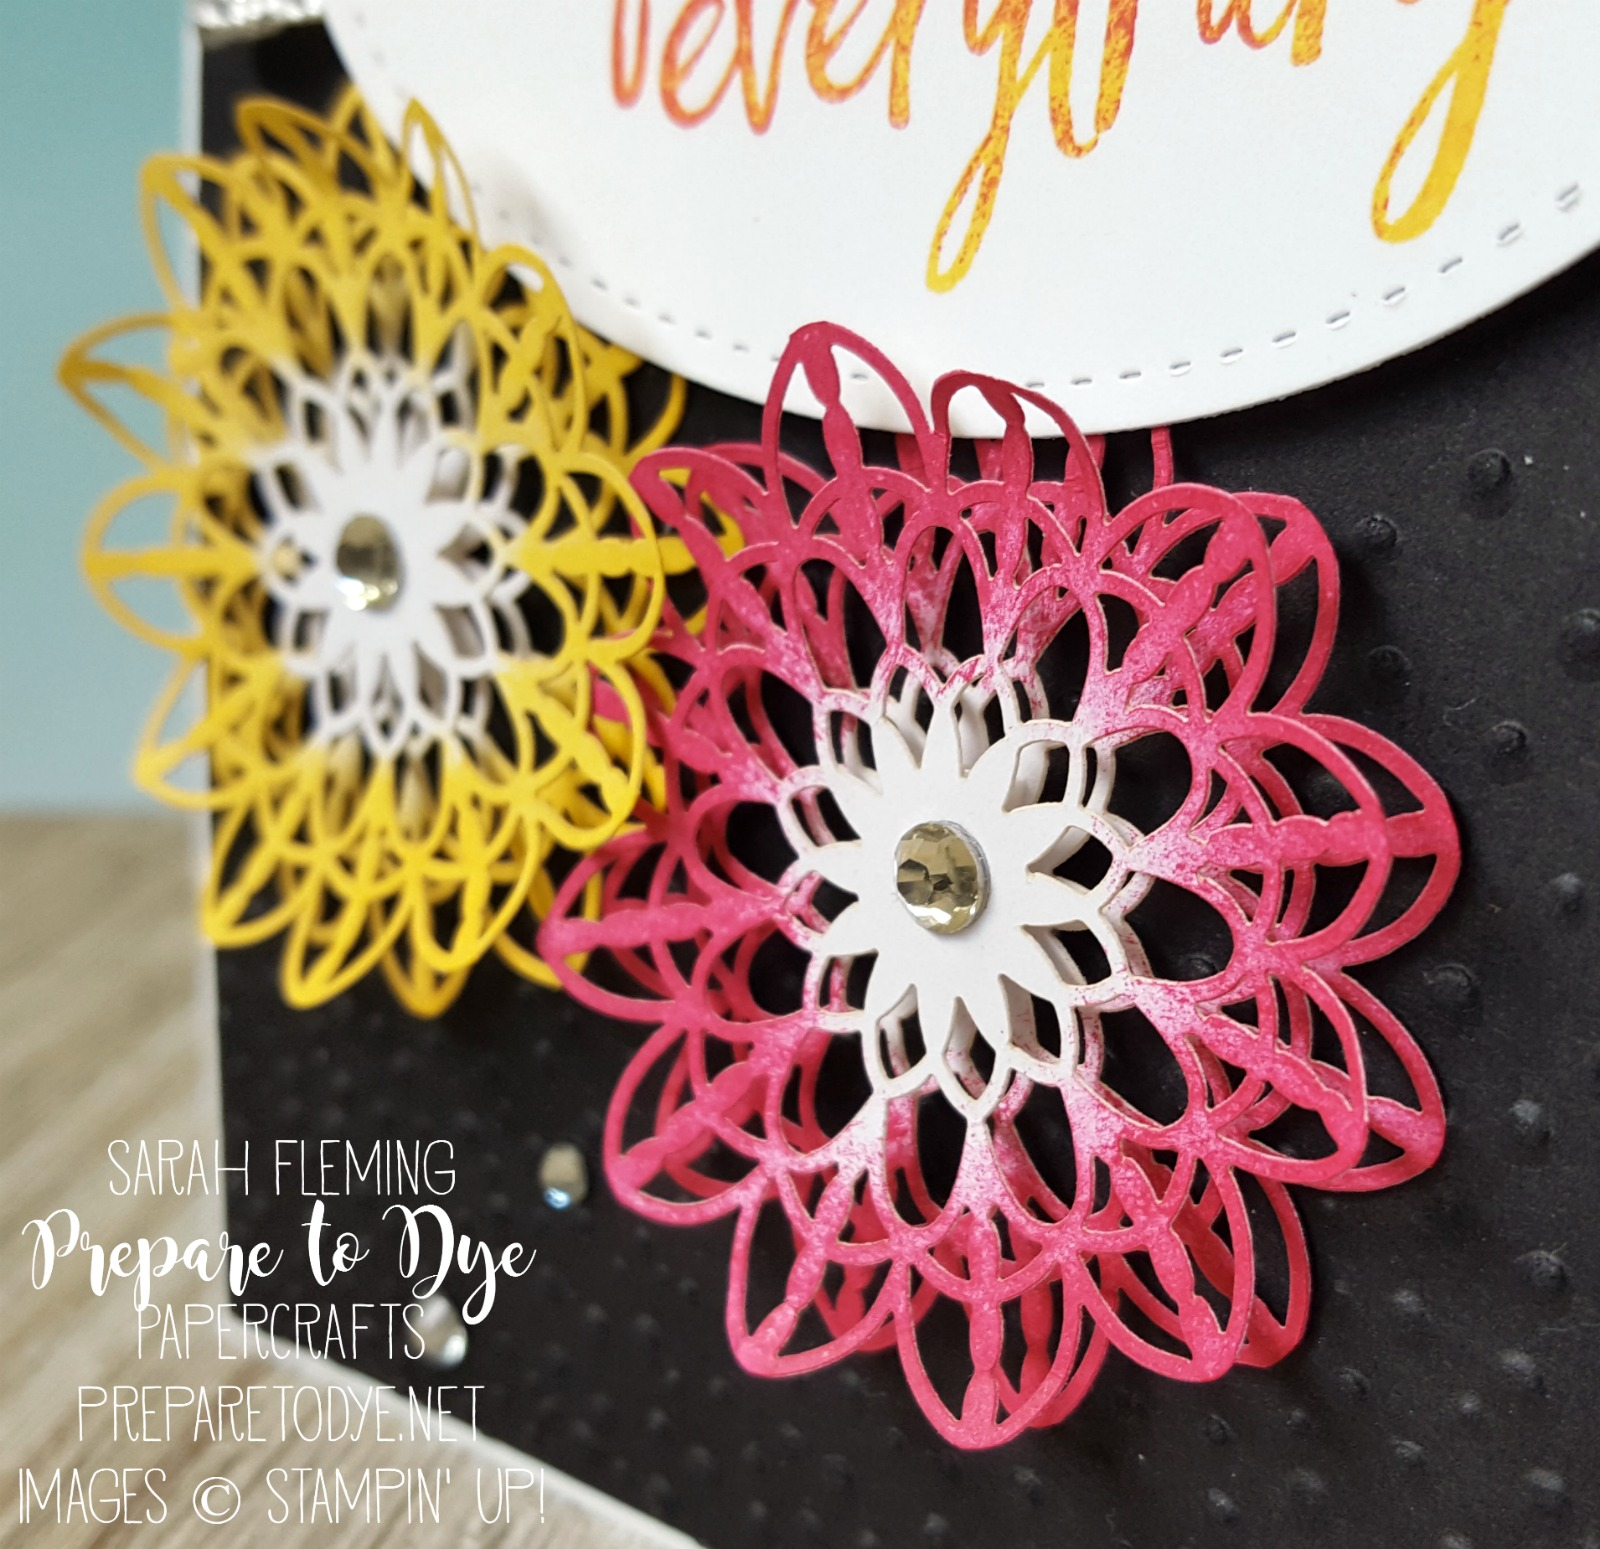 Stampin' Up! Lace Doilies sponged with Melon Mambo & Daffodil Delight ink - Sarah Fleming - Prepare to Dye Papercrafts